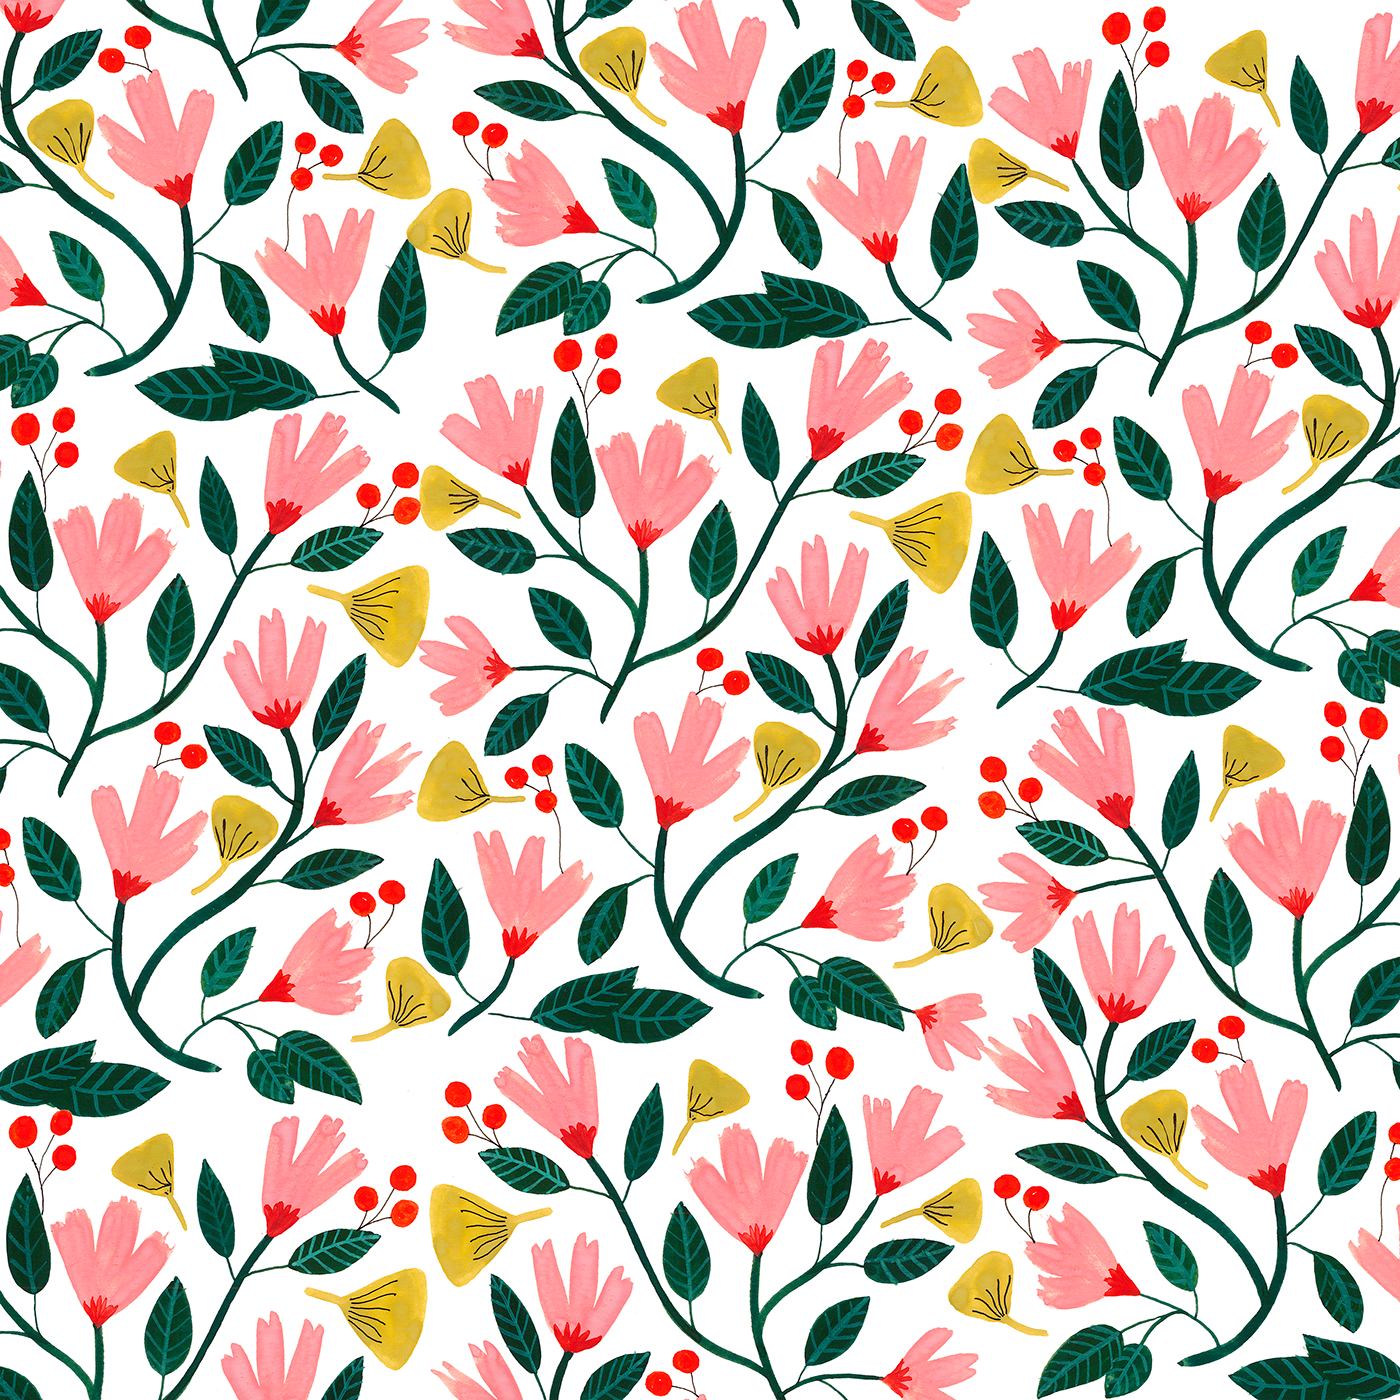 Floral pattern png. On behance thank you